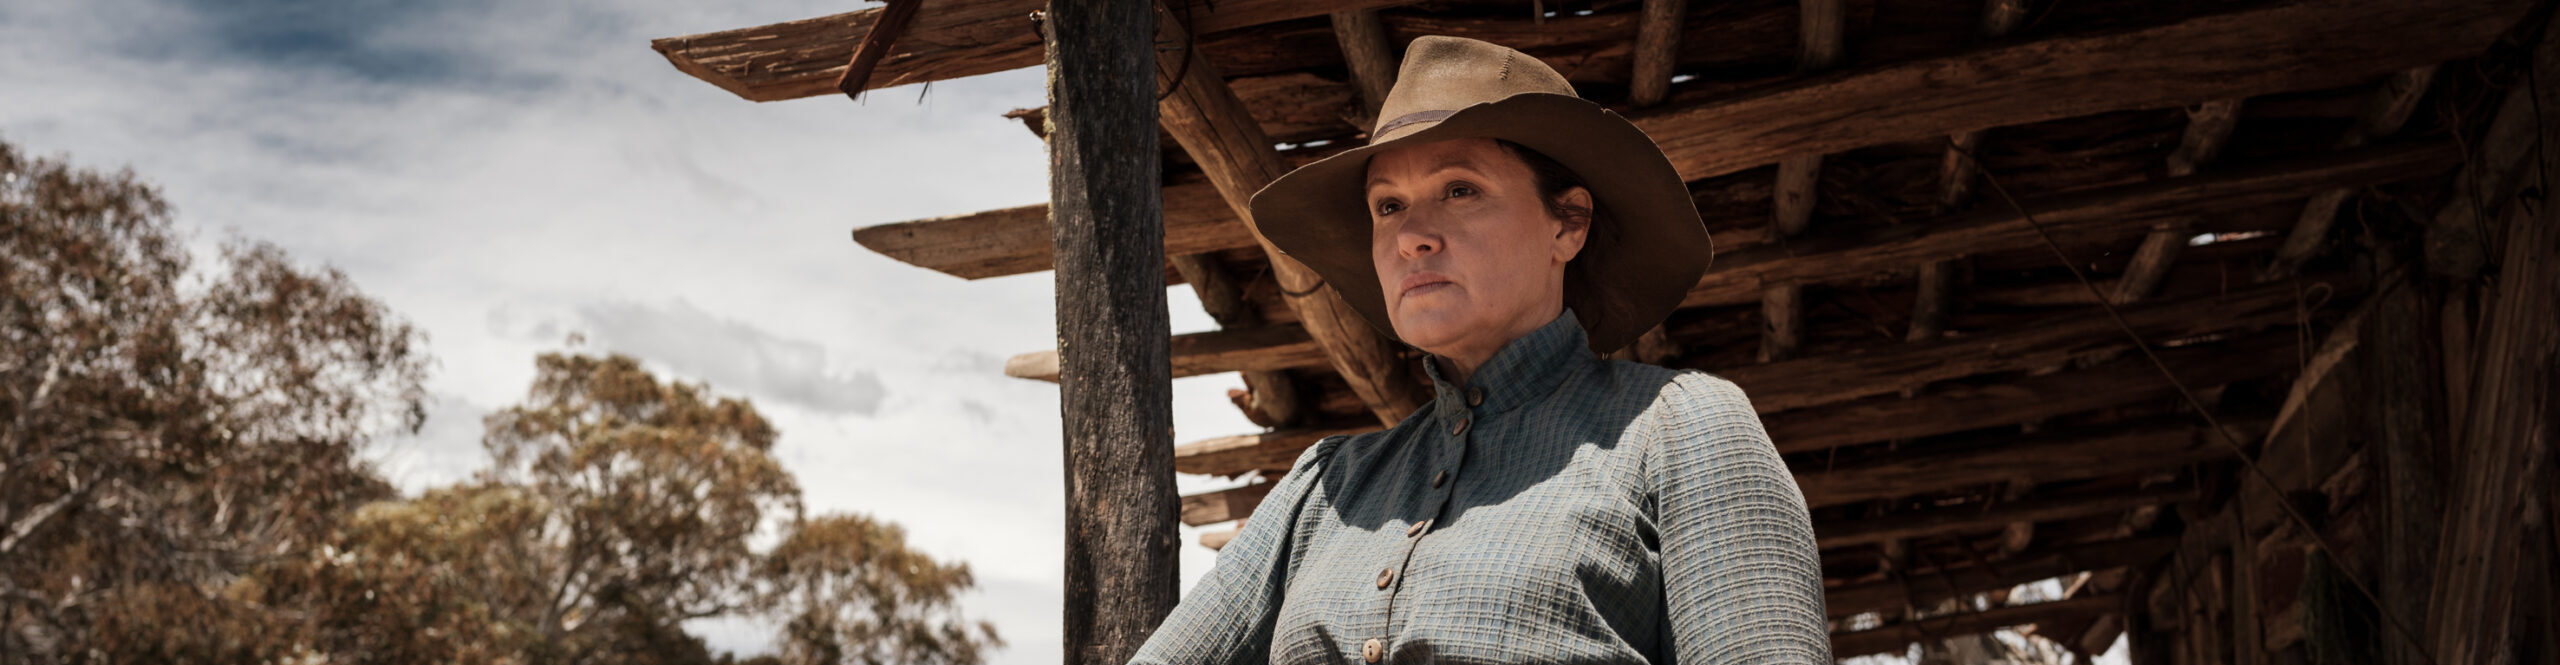 Leah Purcell's 'The Drover's Wife The Legend Of Molly Johnson' Selected For SXSW